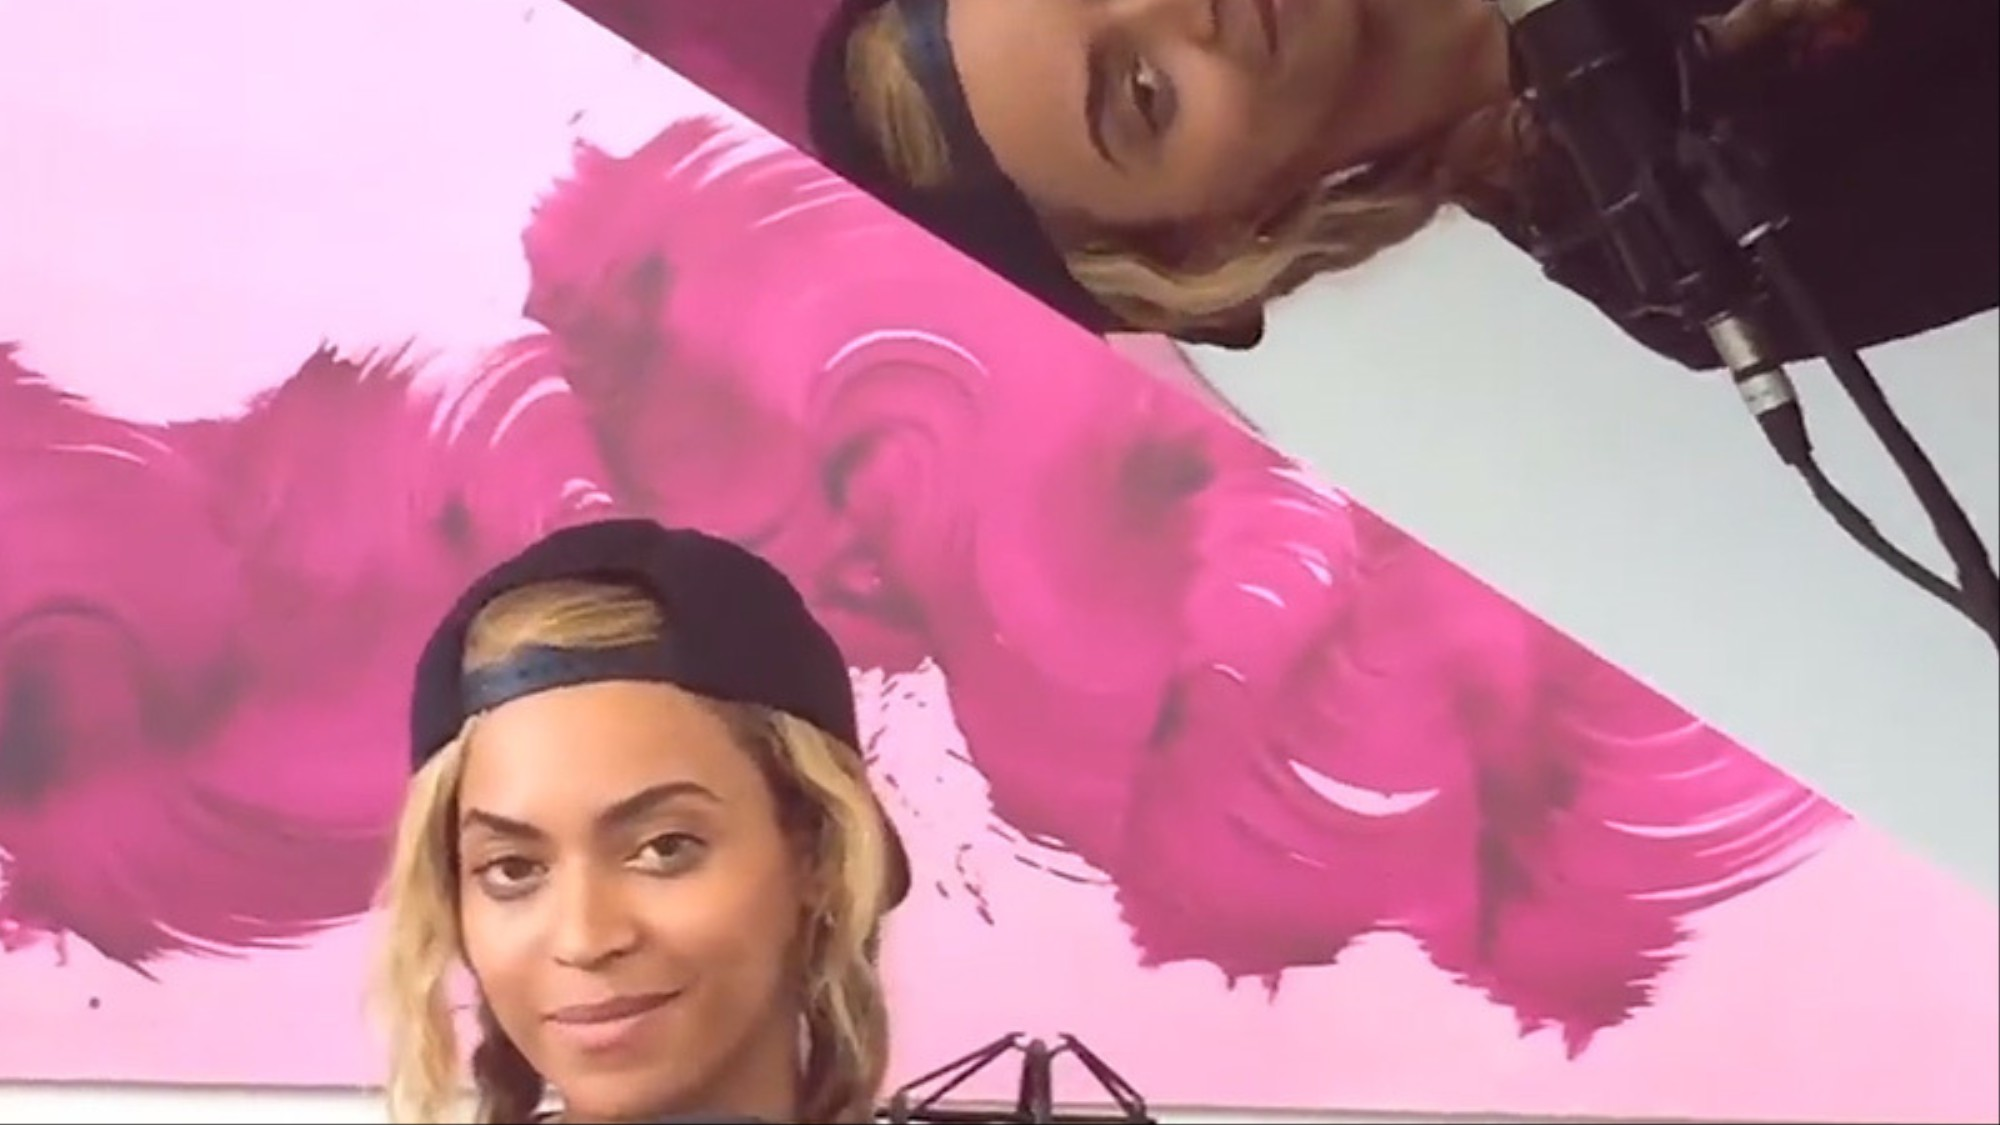 bey serenades jay with new single 'die with you' - i-D